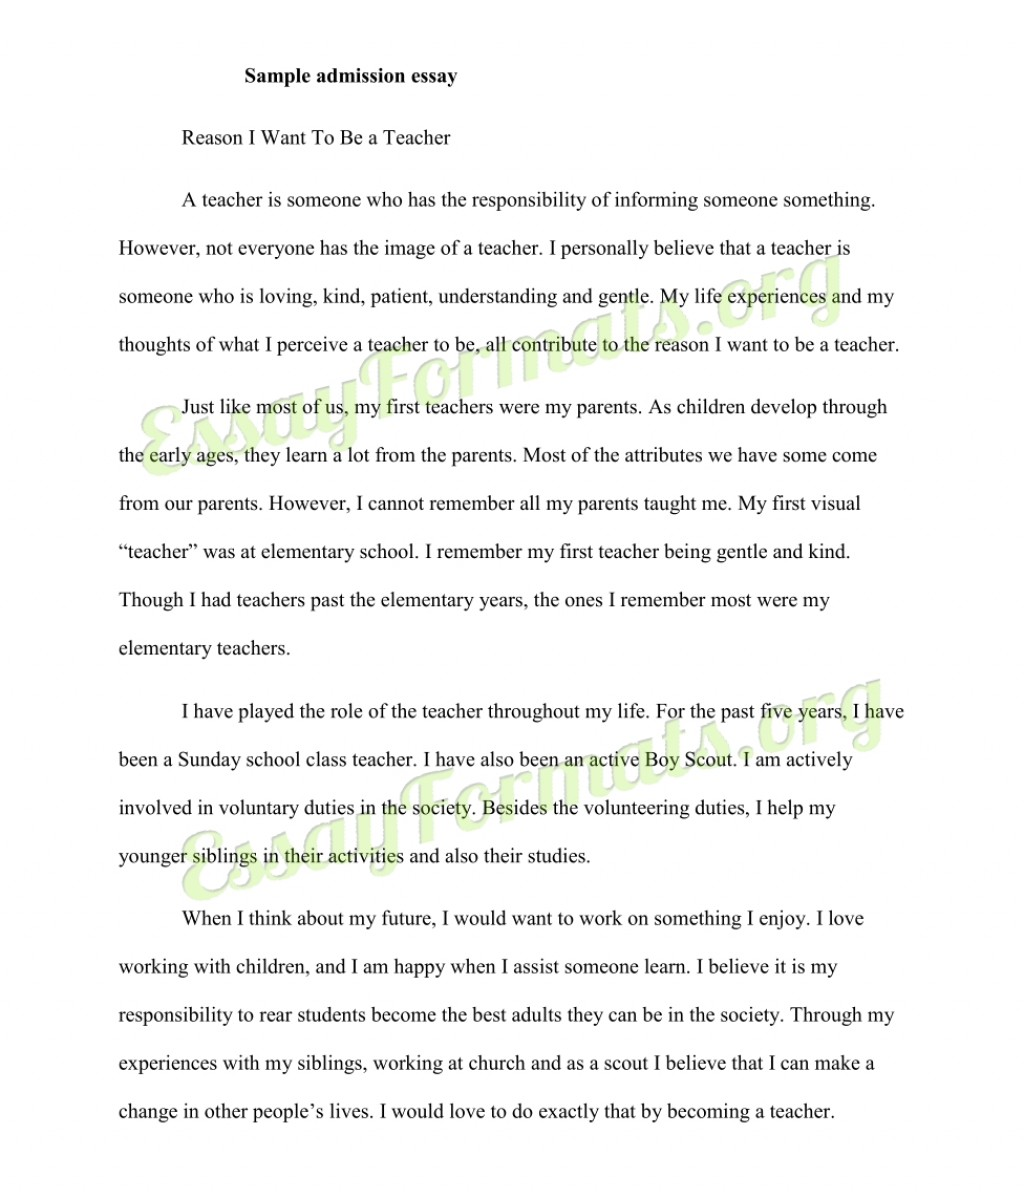 001 How To Format College Application Essay Ins Ssrenterprises Co Within Awesome A Set Up My Your Large